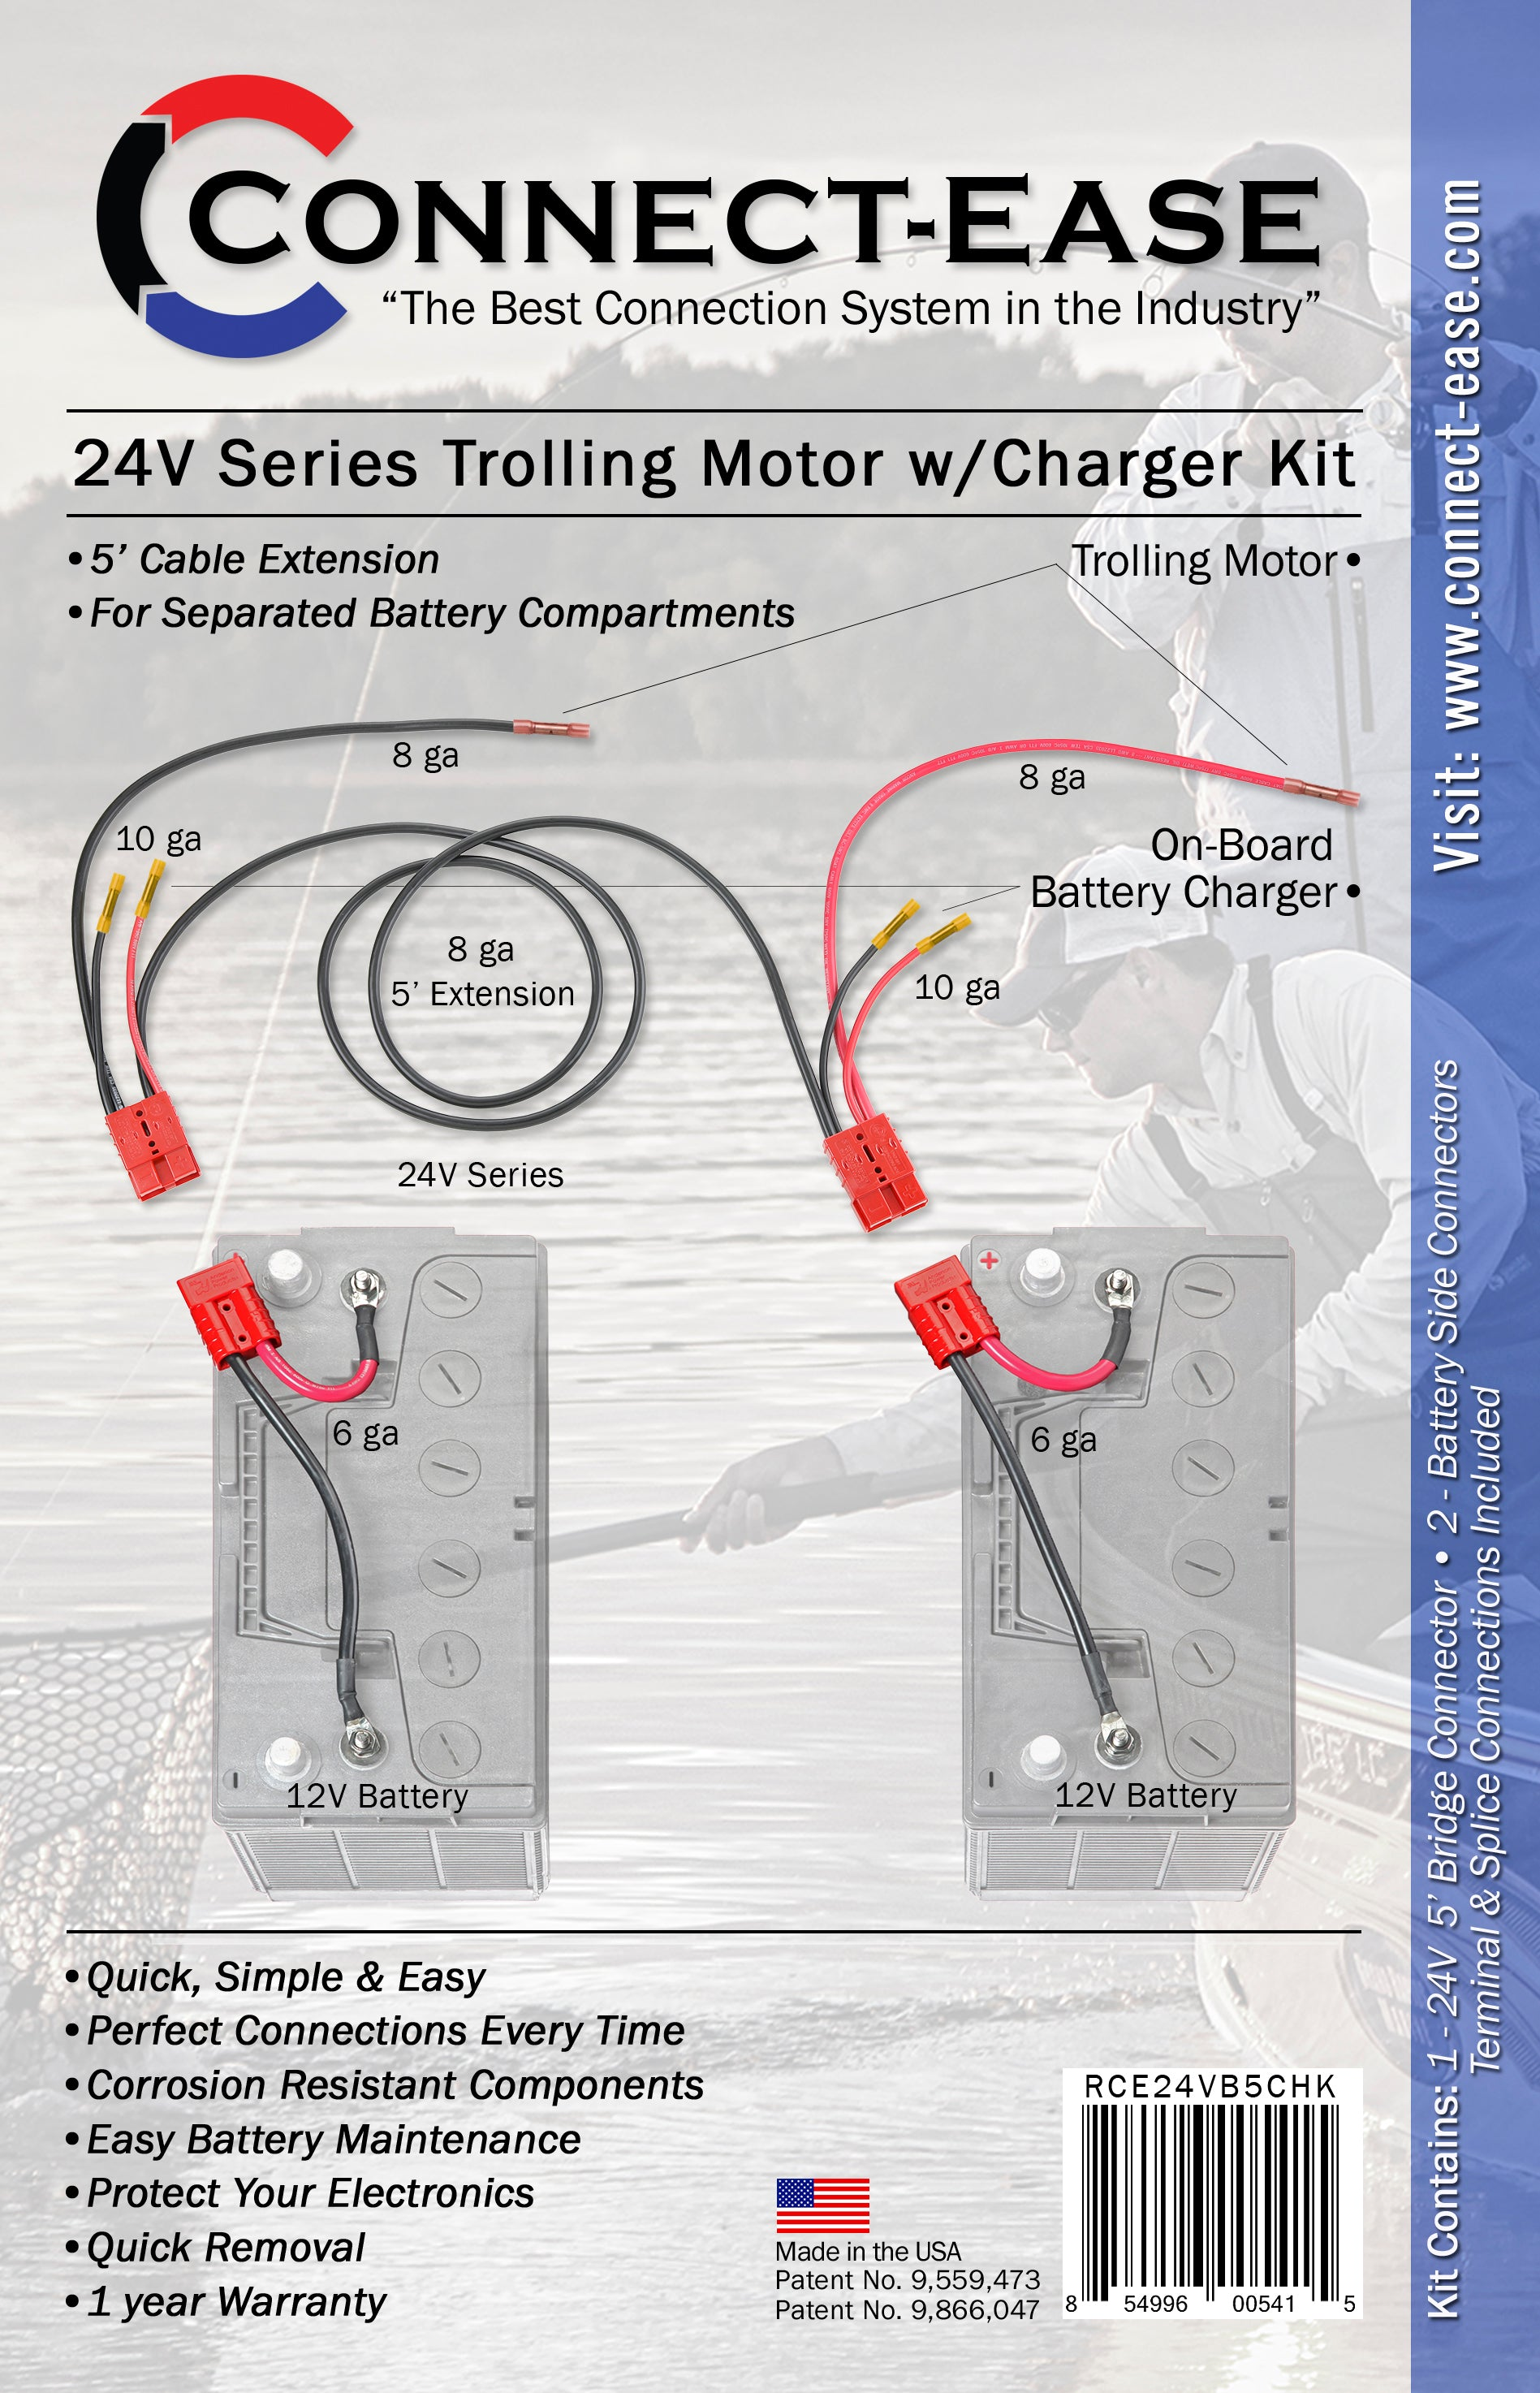 24 Volt Trolling Motor Battery Wiring Diagram With Charger from cdn.shopify.com